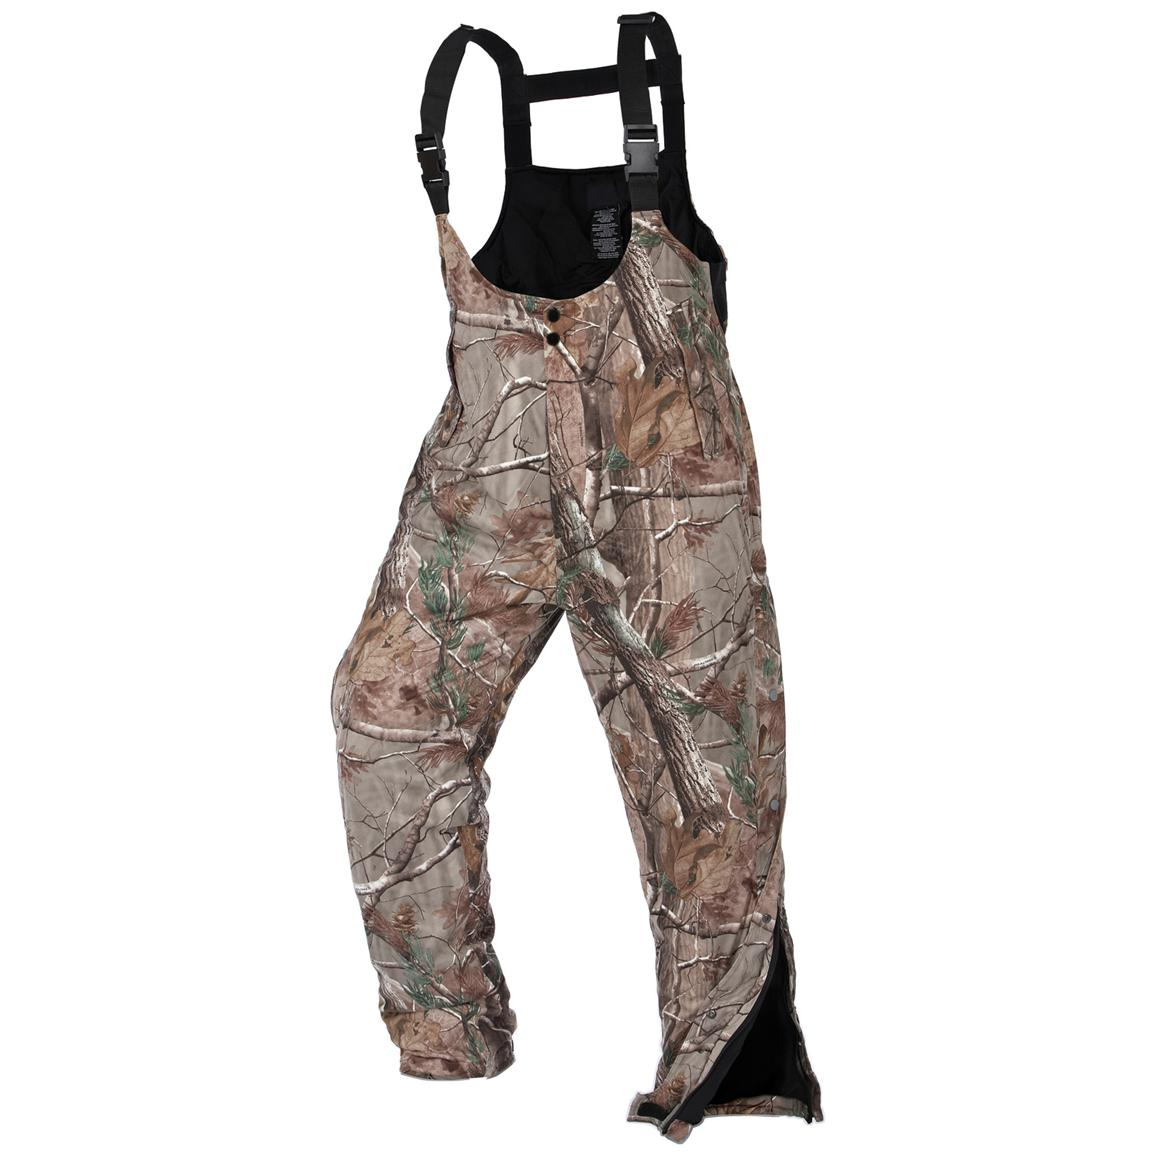 Onyx ArcticShield® Pro Series Waterproof Hunting Bib Overalls with X-System™ Lining, Realtree® AP™